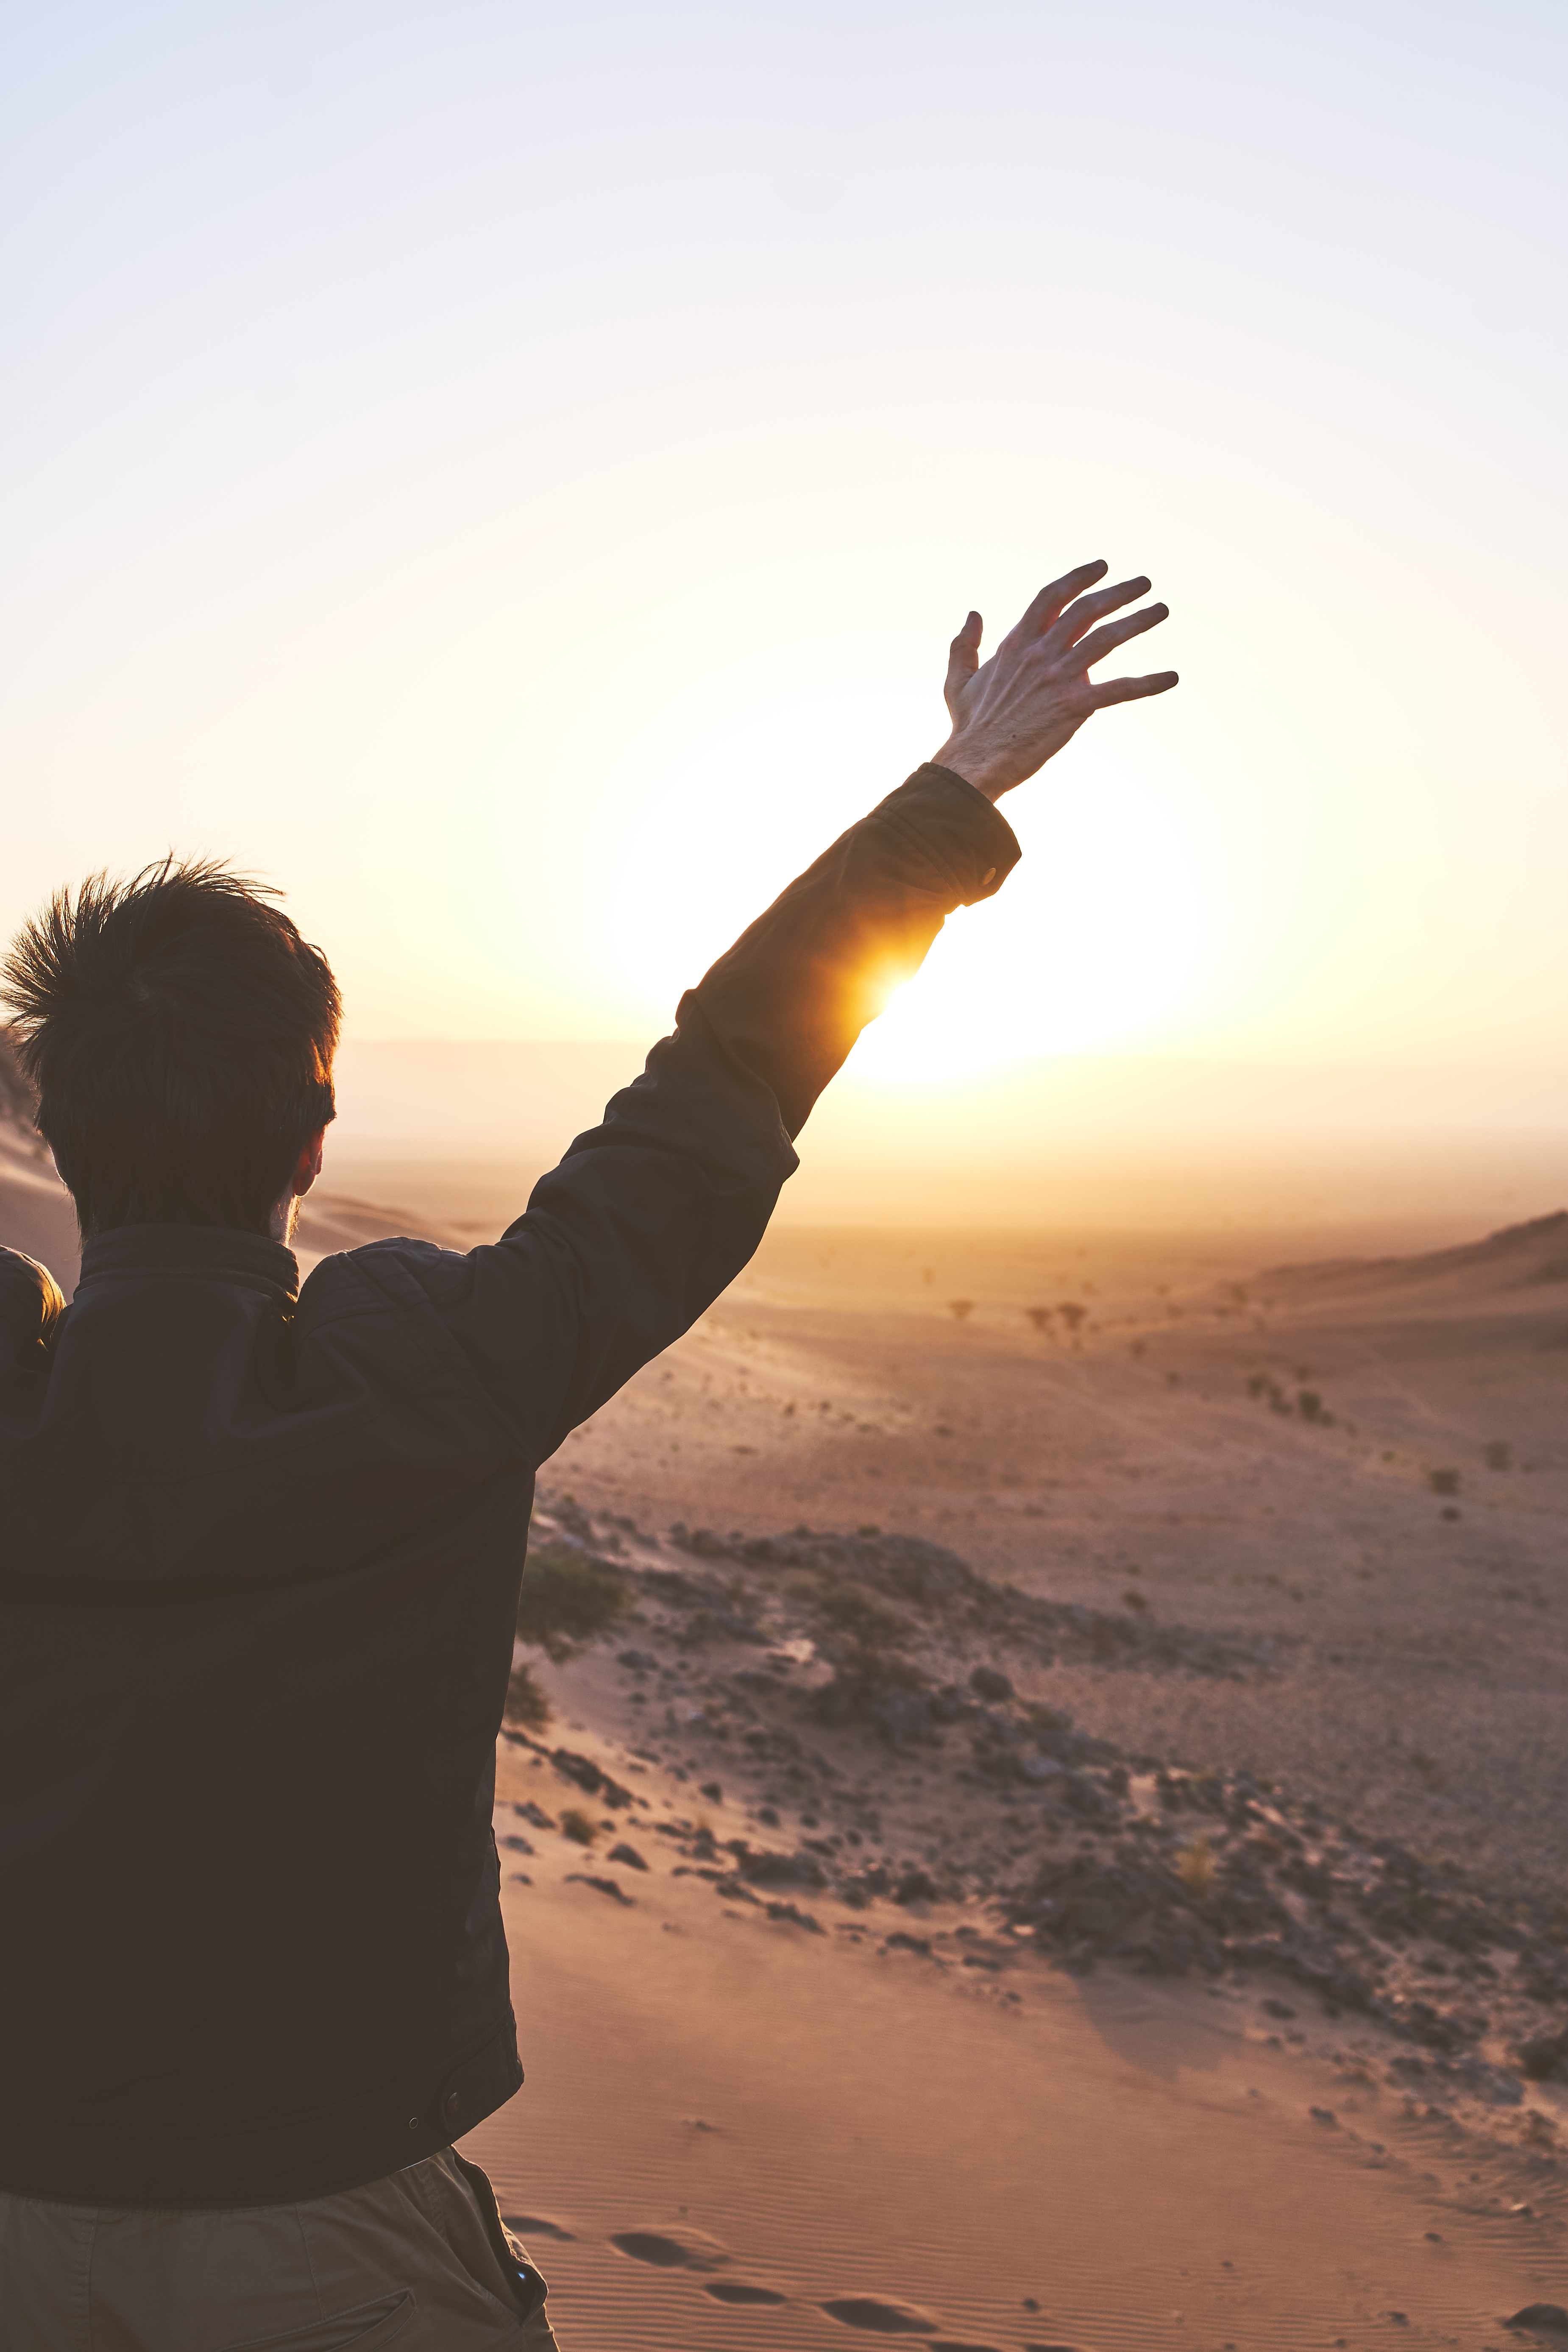 A man holding arms up in a desert on a sunrise